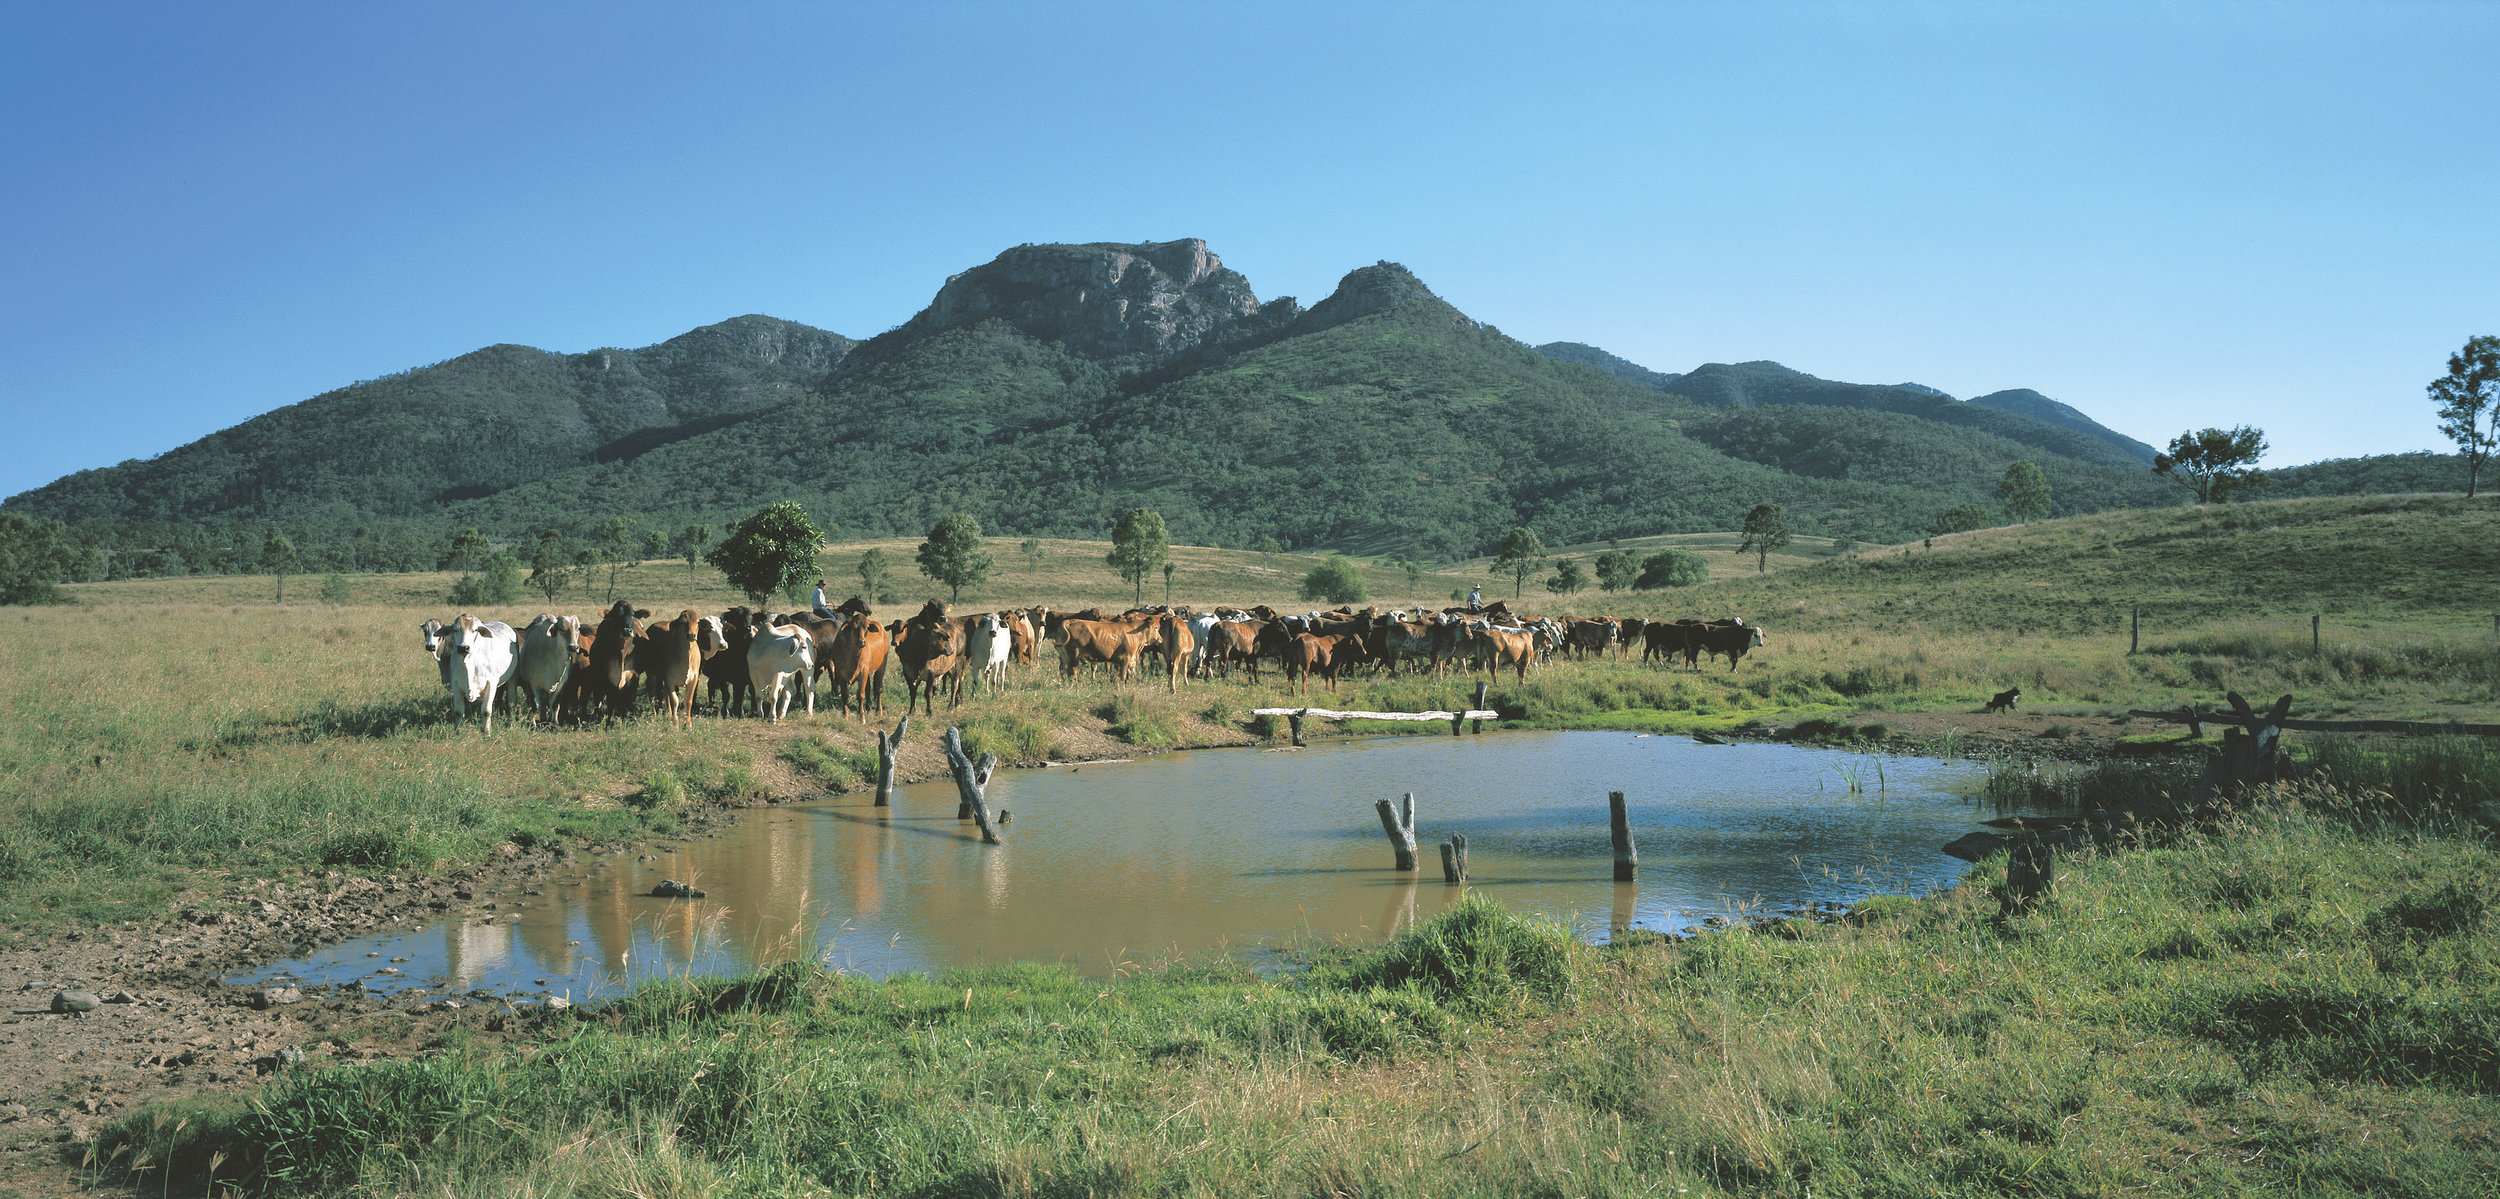 cattle mustered at water hole with Queensland mountain in the background